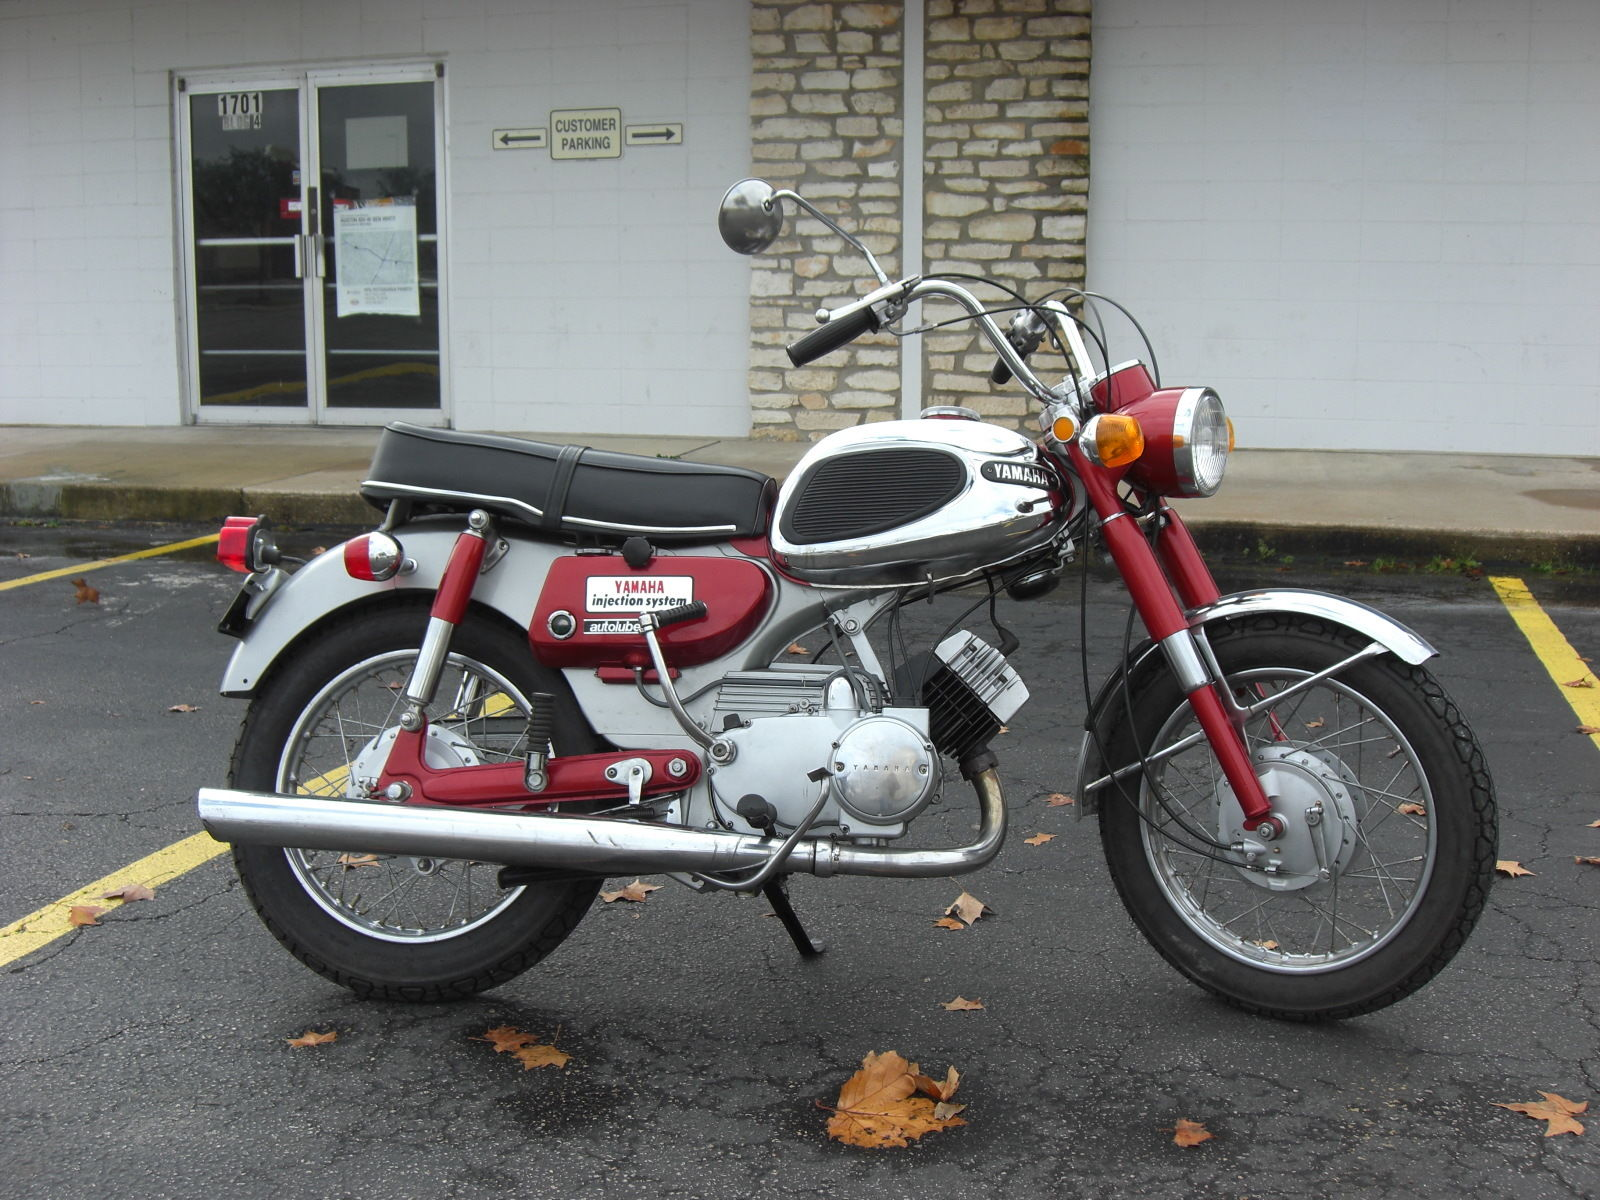 Restored Yamaha Ya6 1966 Photographs At Classic Bikes Restored Bikes Restored